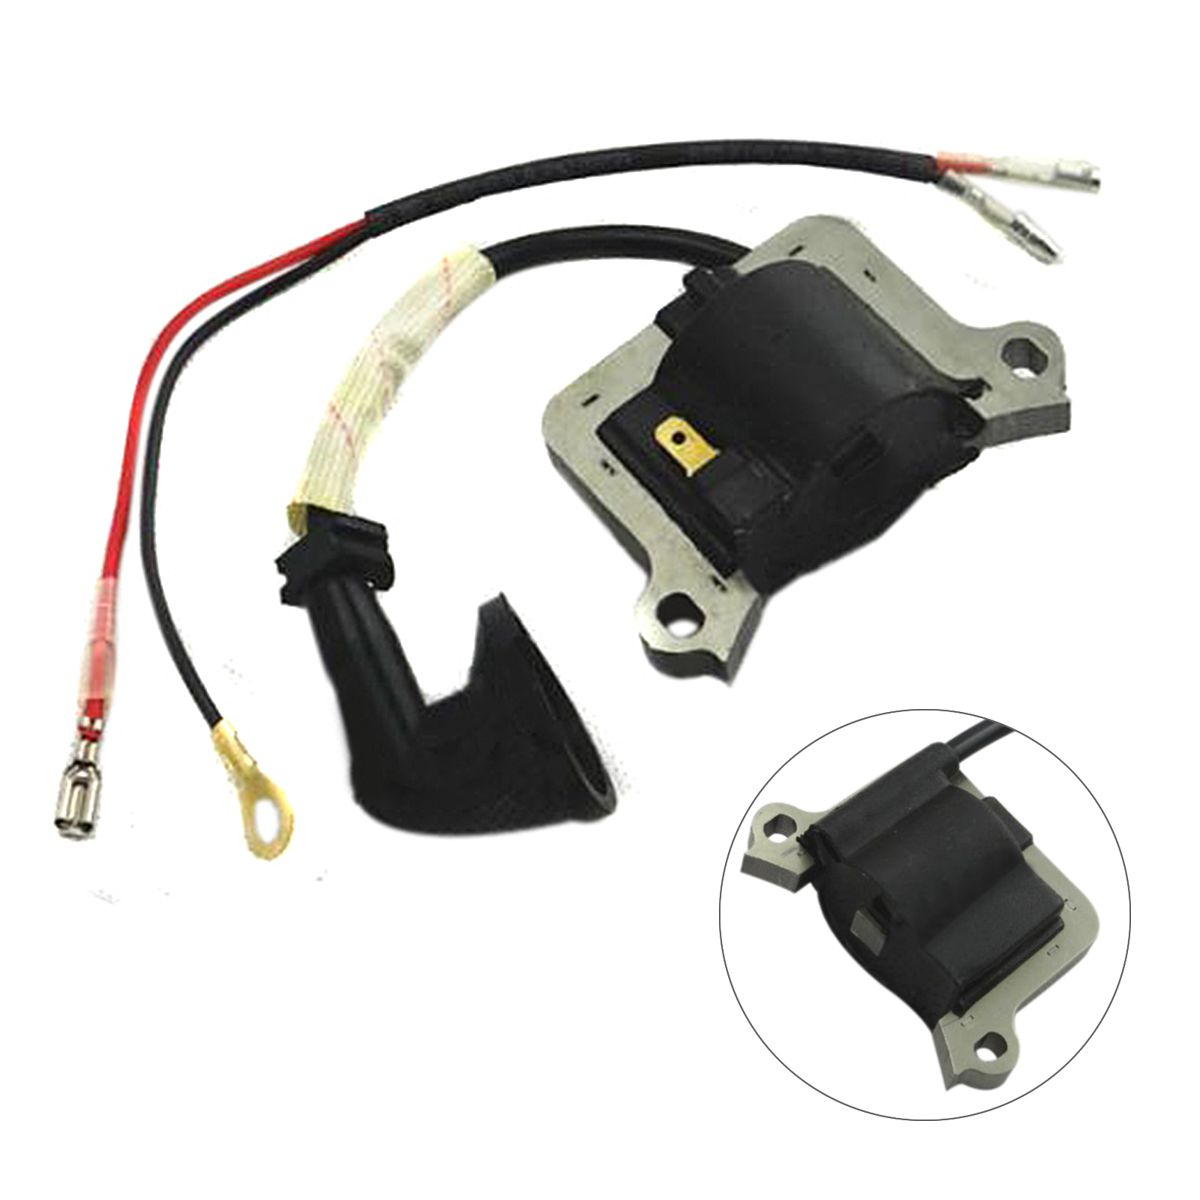 DWZ Ignition Coil Fit For Chainsaw Strimmer Brush Cutter Lawnmower 2 Stroke Engine relay cdi ignition ignition coil regulator for yamaha xv250 virago vstar 250